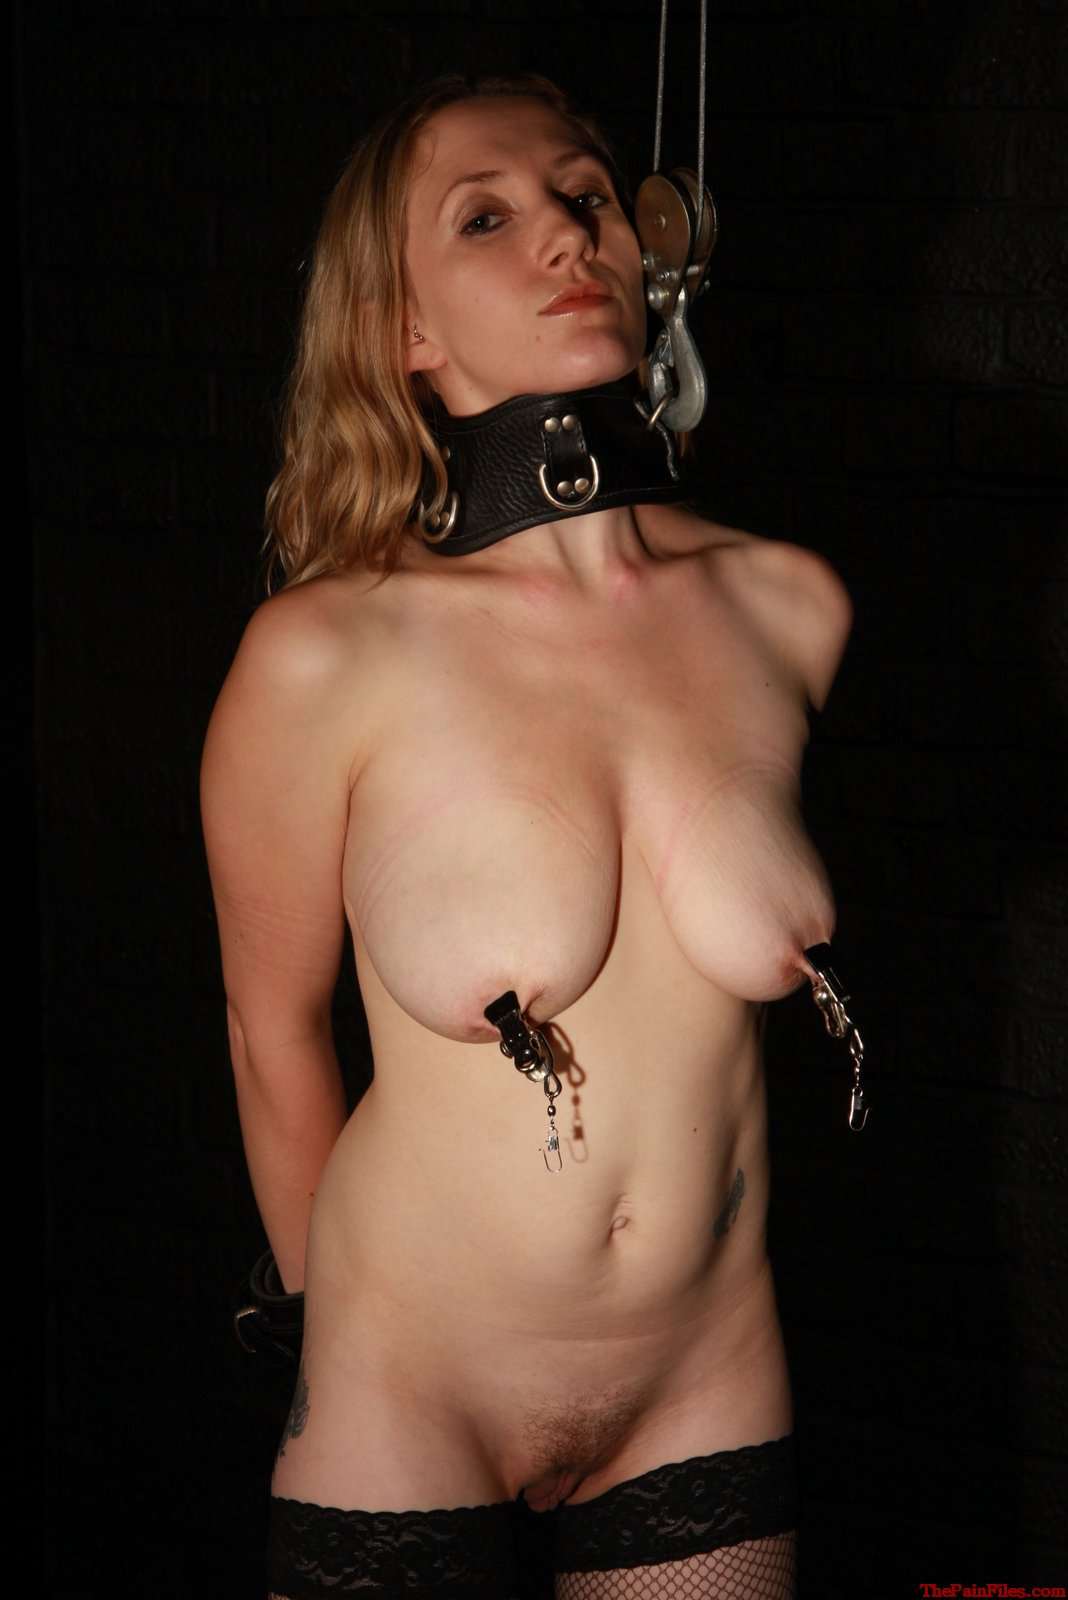 Slave girl nipple pain